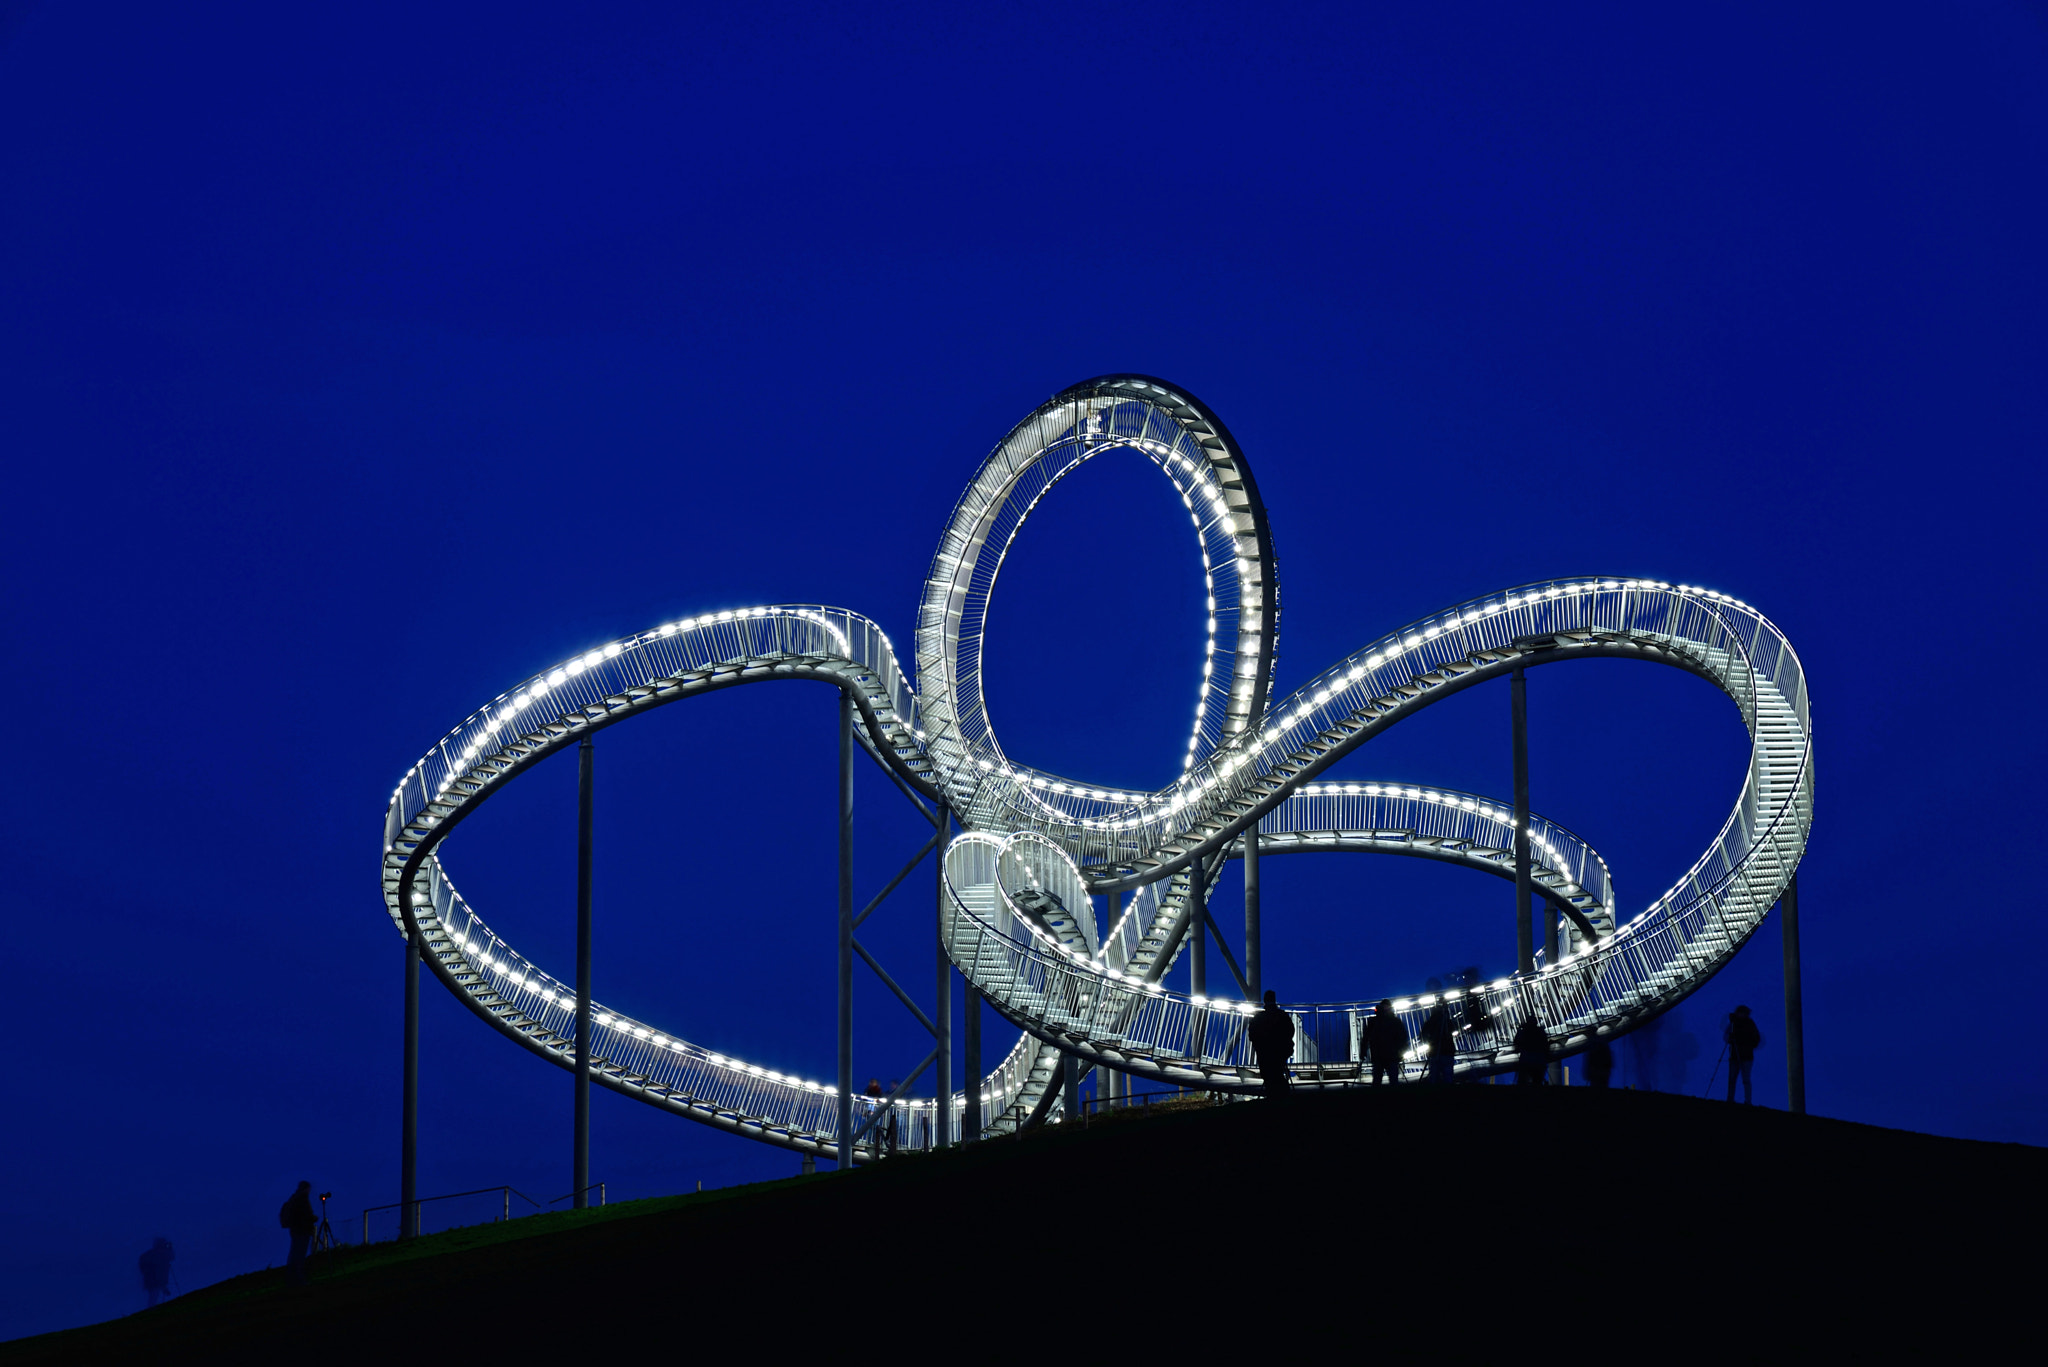 Photograph Tiger & Turtle by Michael Hubrich on 500px